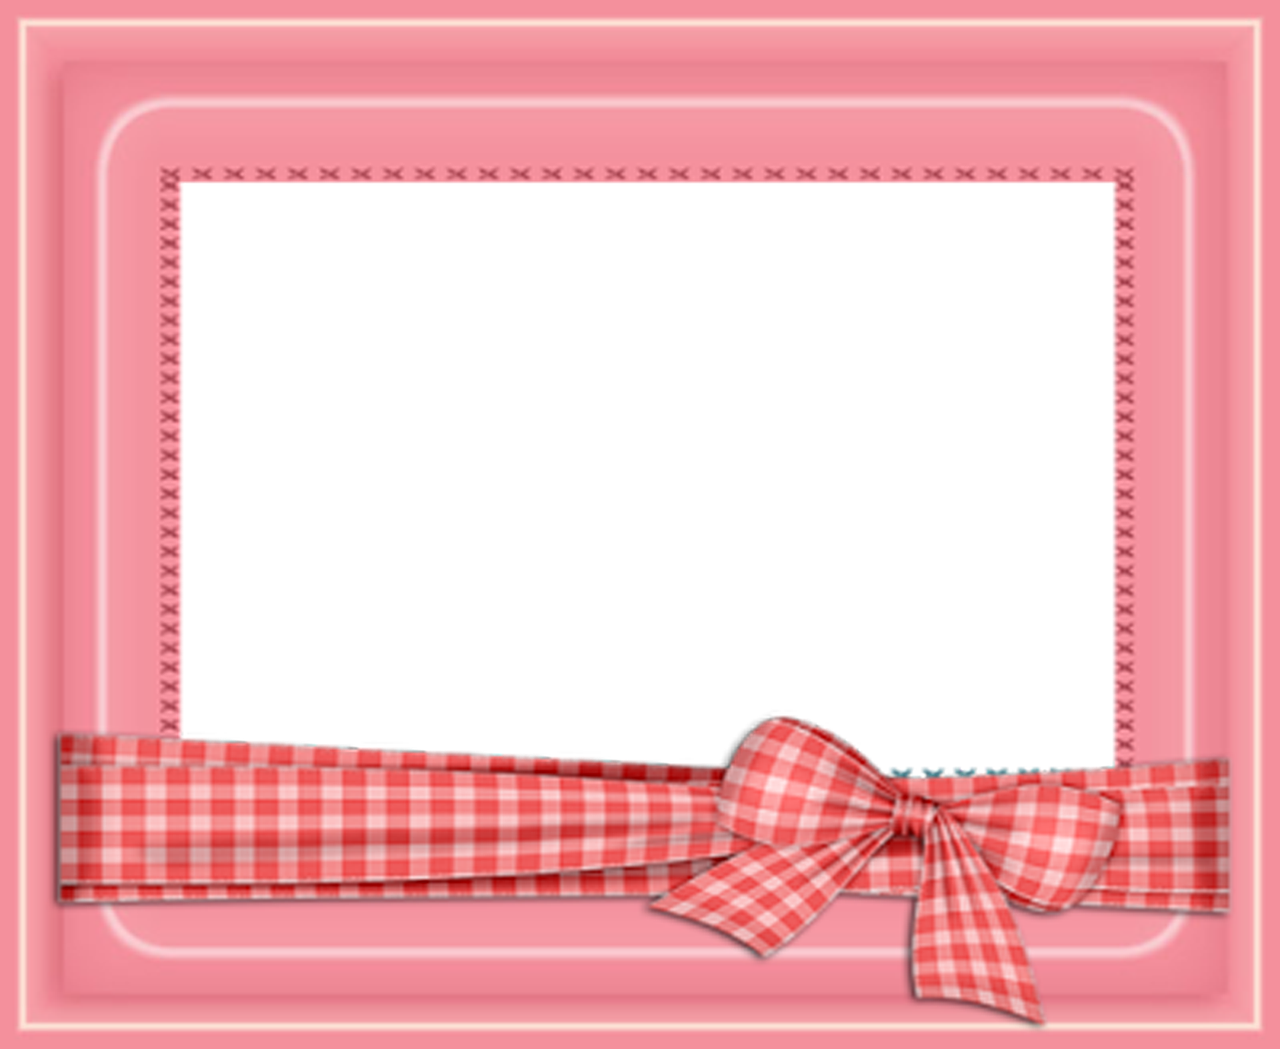 Pink picture frame png. Texture free illustrations